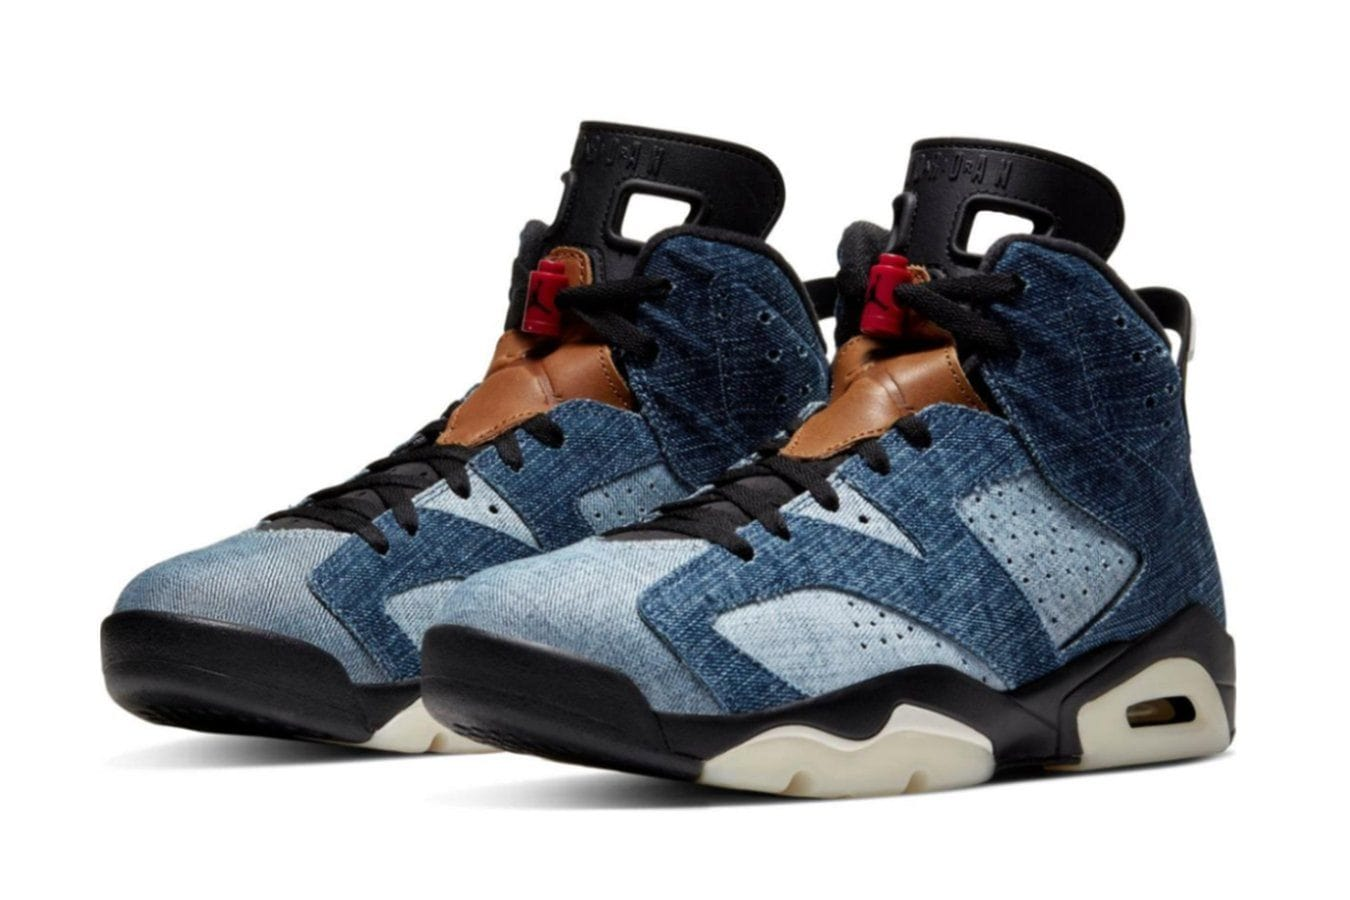 AIR JORDAN 6 RETRO 'WASHED DENIM' - CT5350 401 MENS FOOTWEAR BD